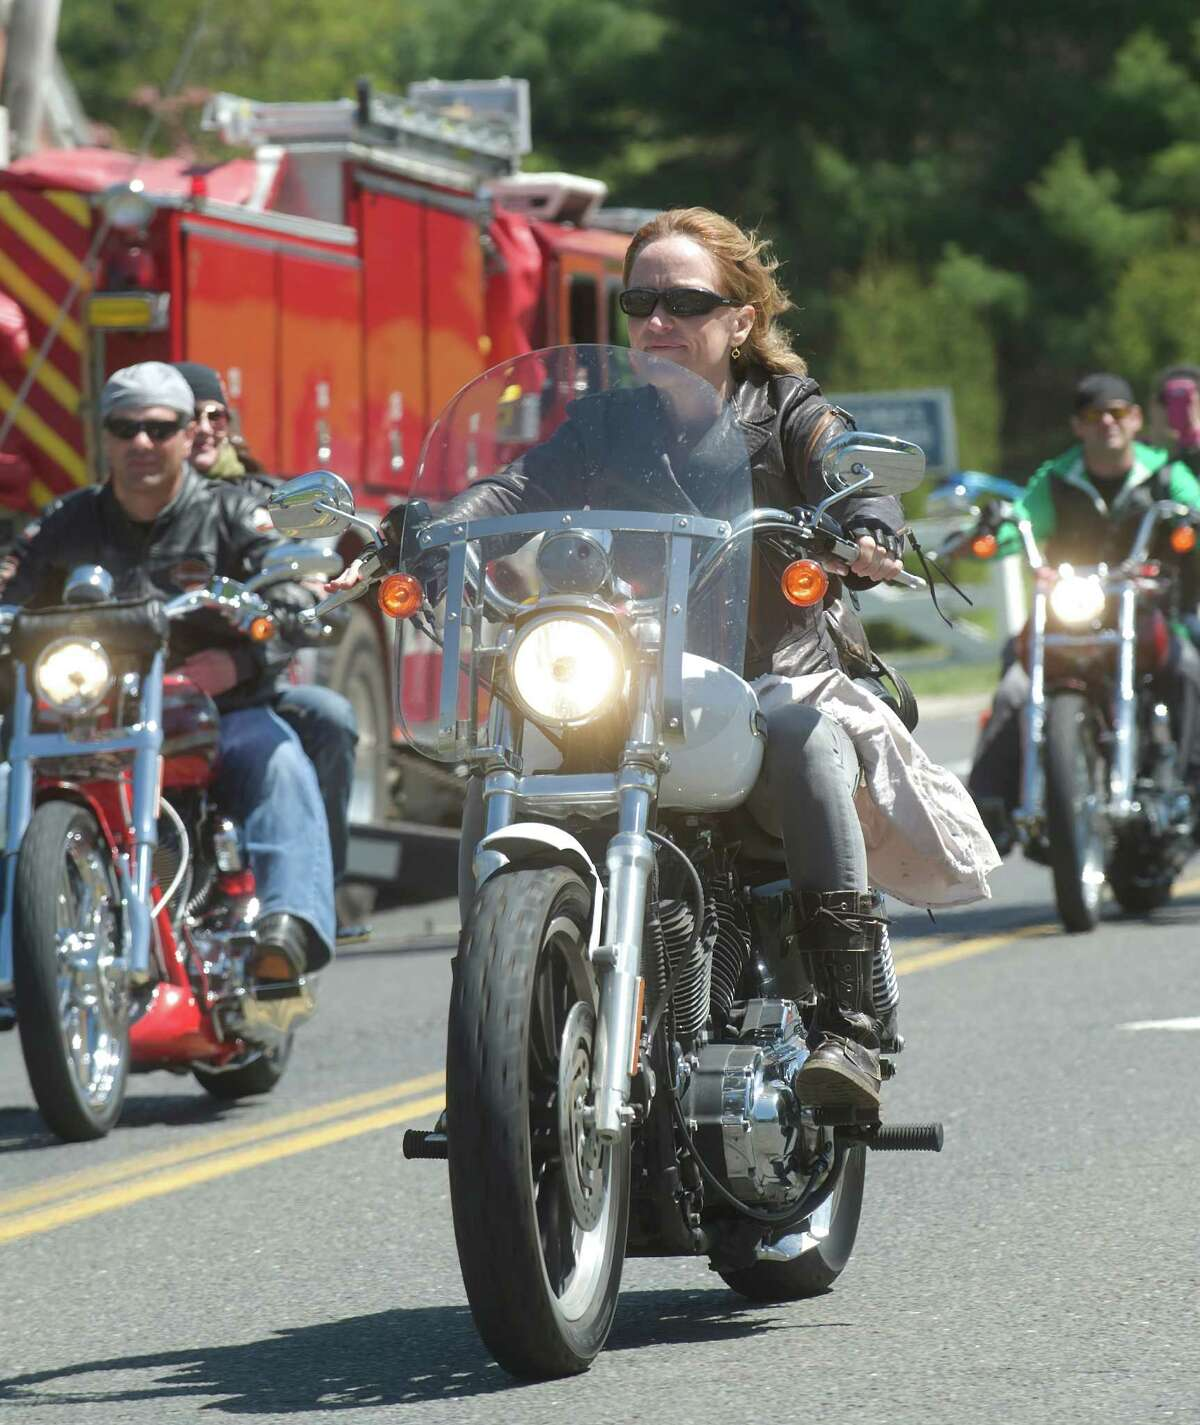 Riders in the Green Ribbon Ride pass through Newtown, Conn on Sunday, May 5th, 2013.